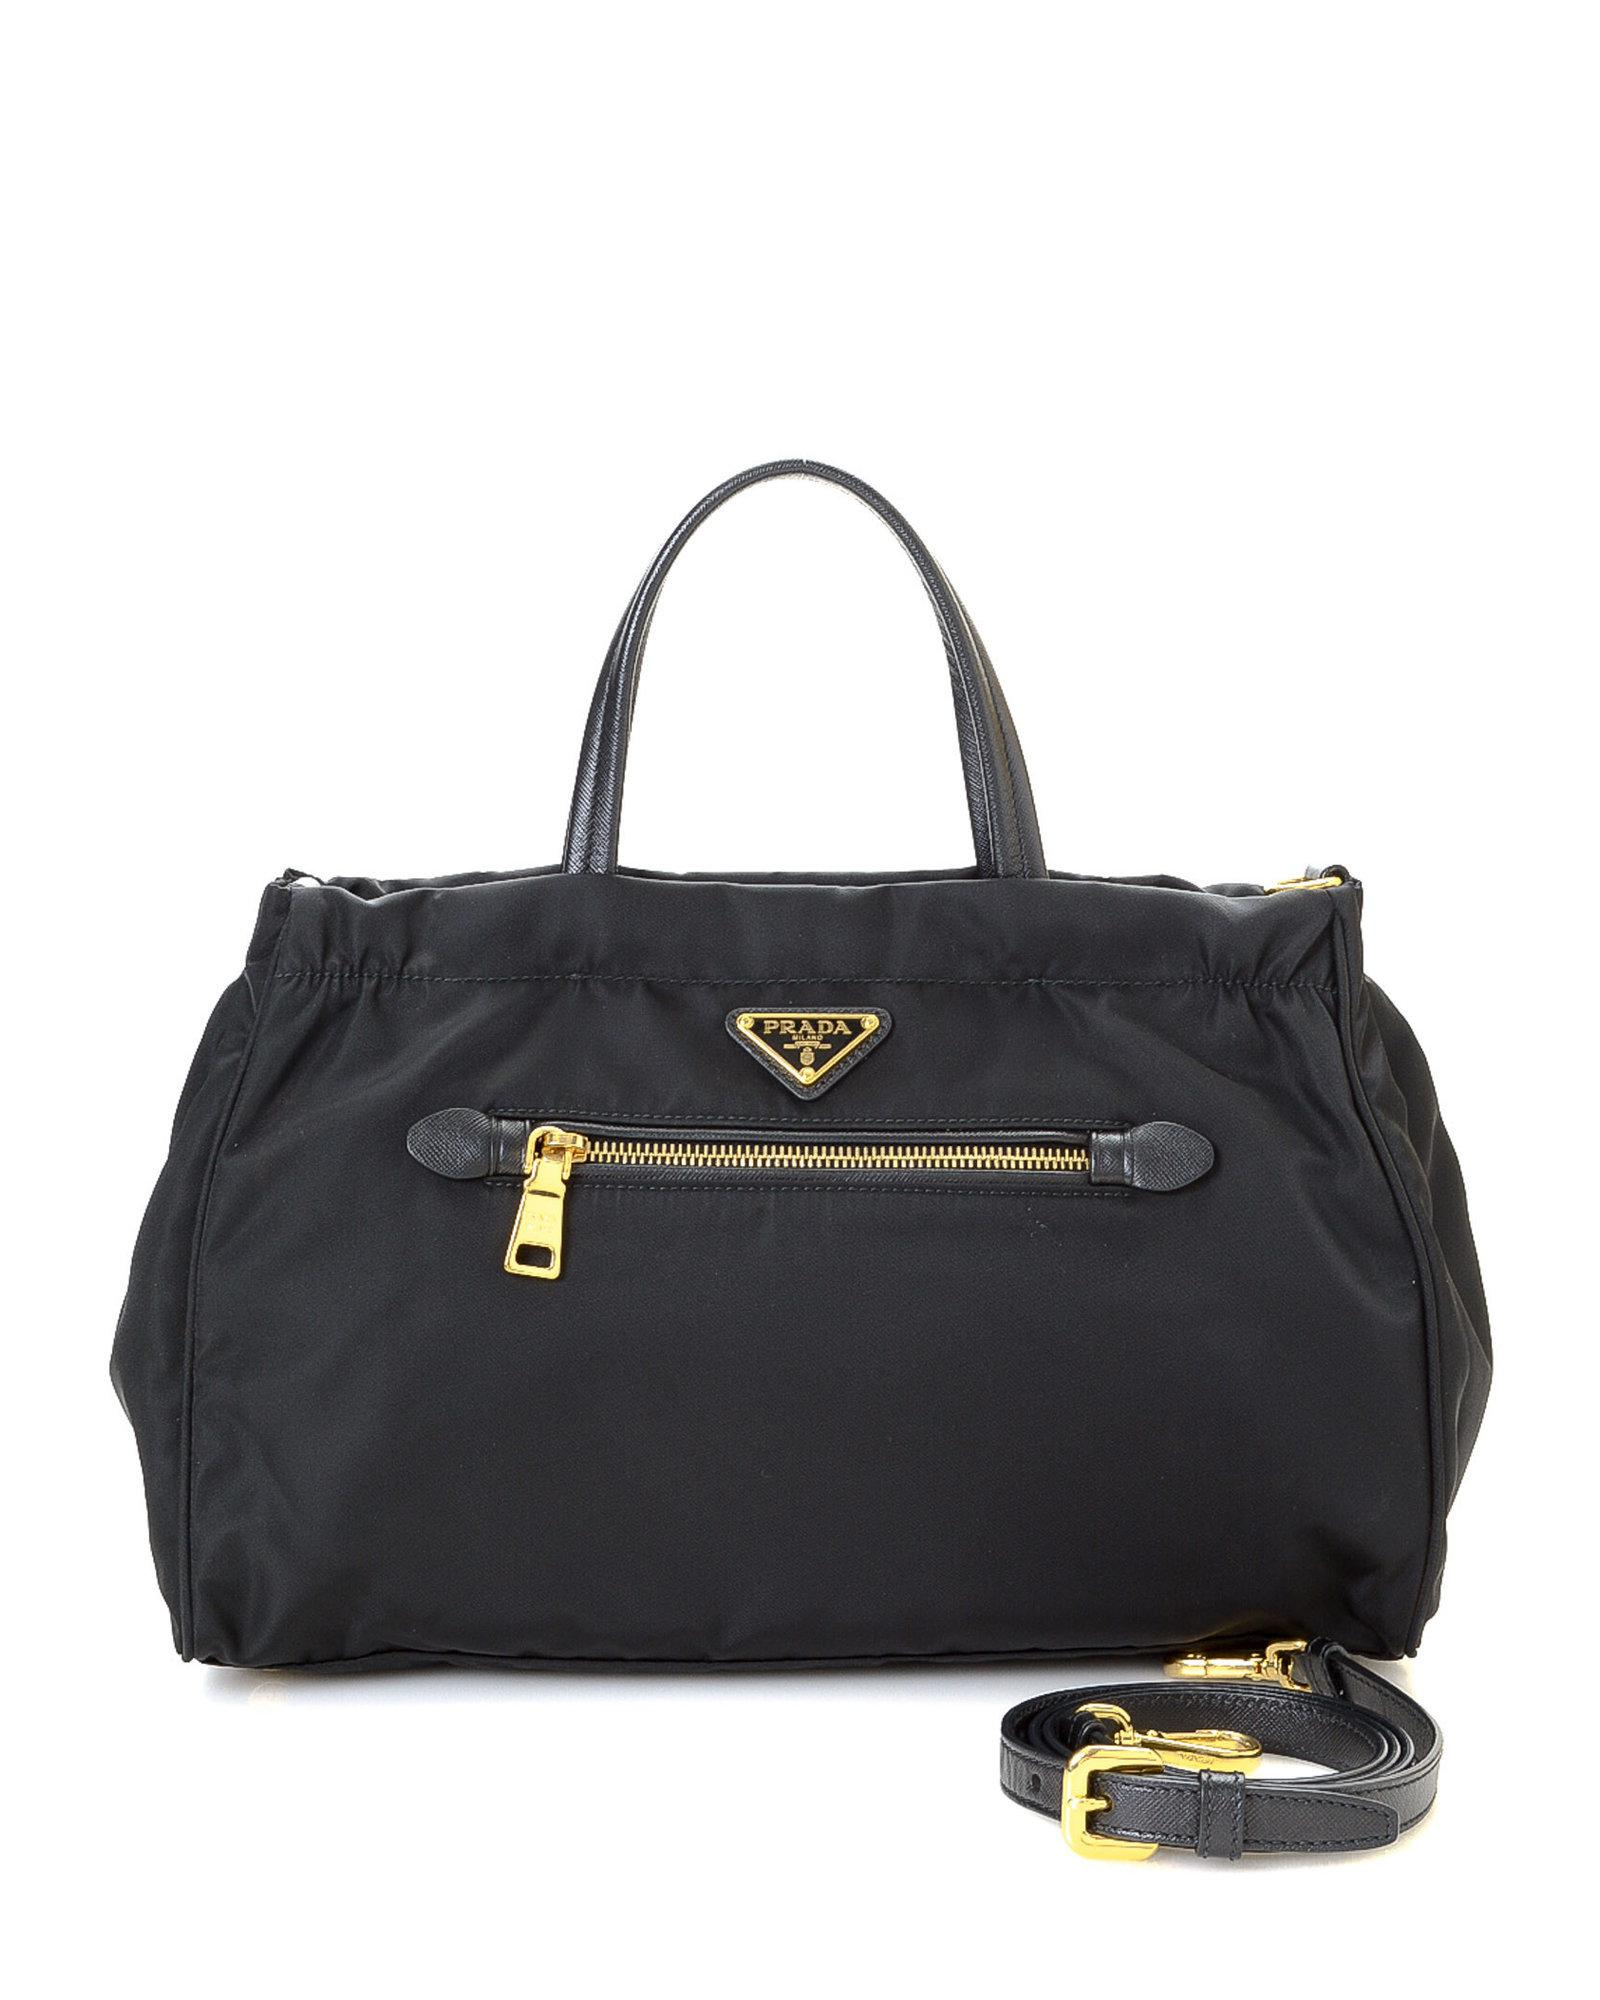 8b3c7a9e579e Lyst - Prada Tessuto Two Way Tote - Vinatge in Black